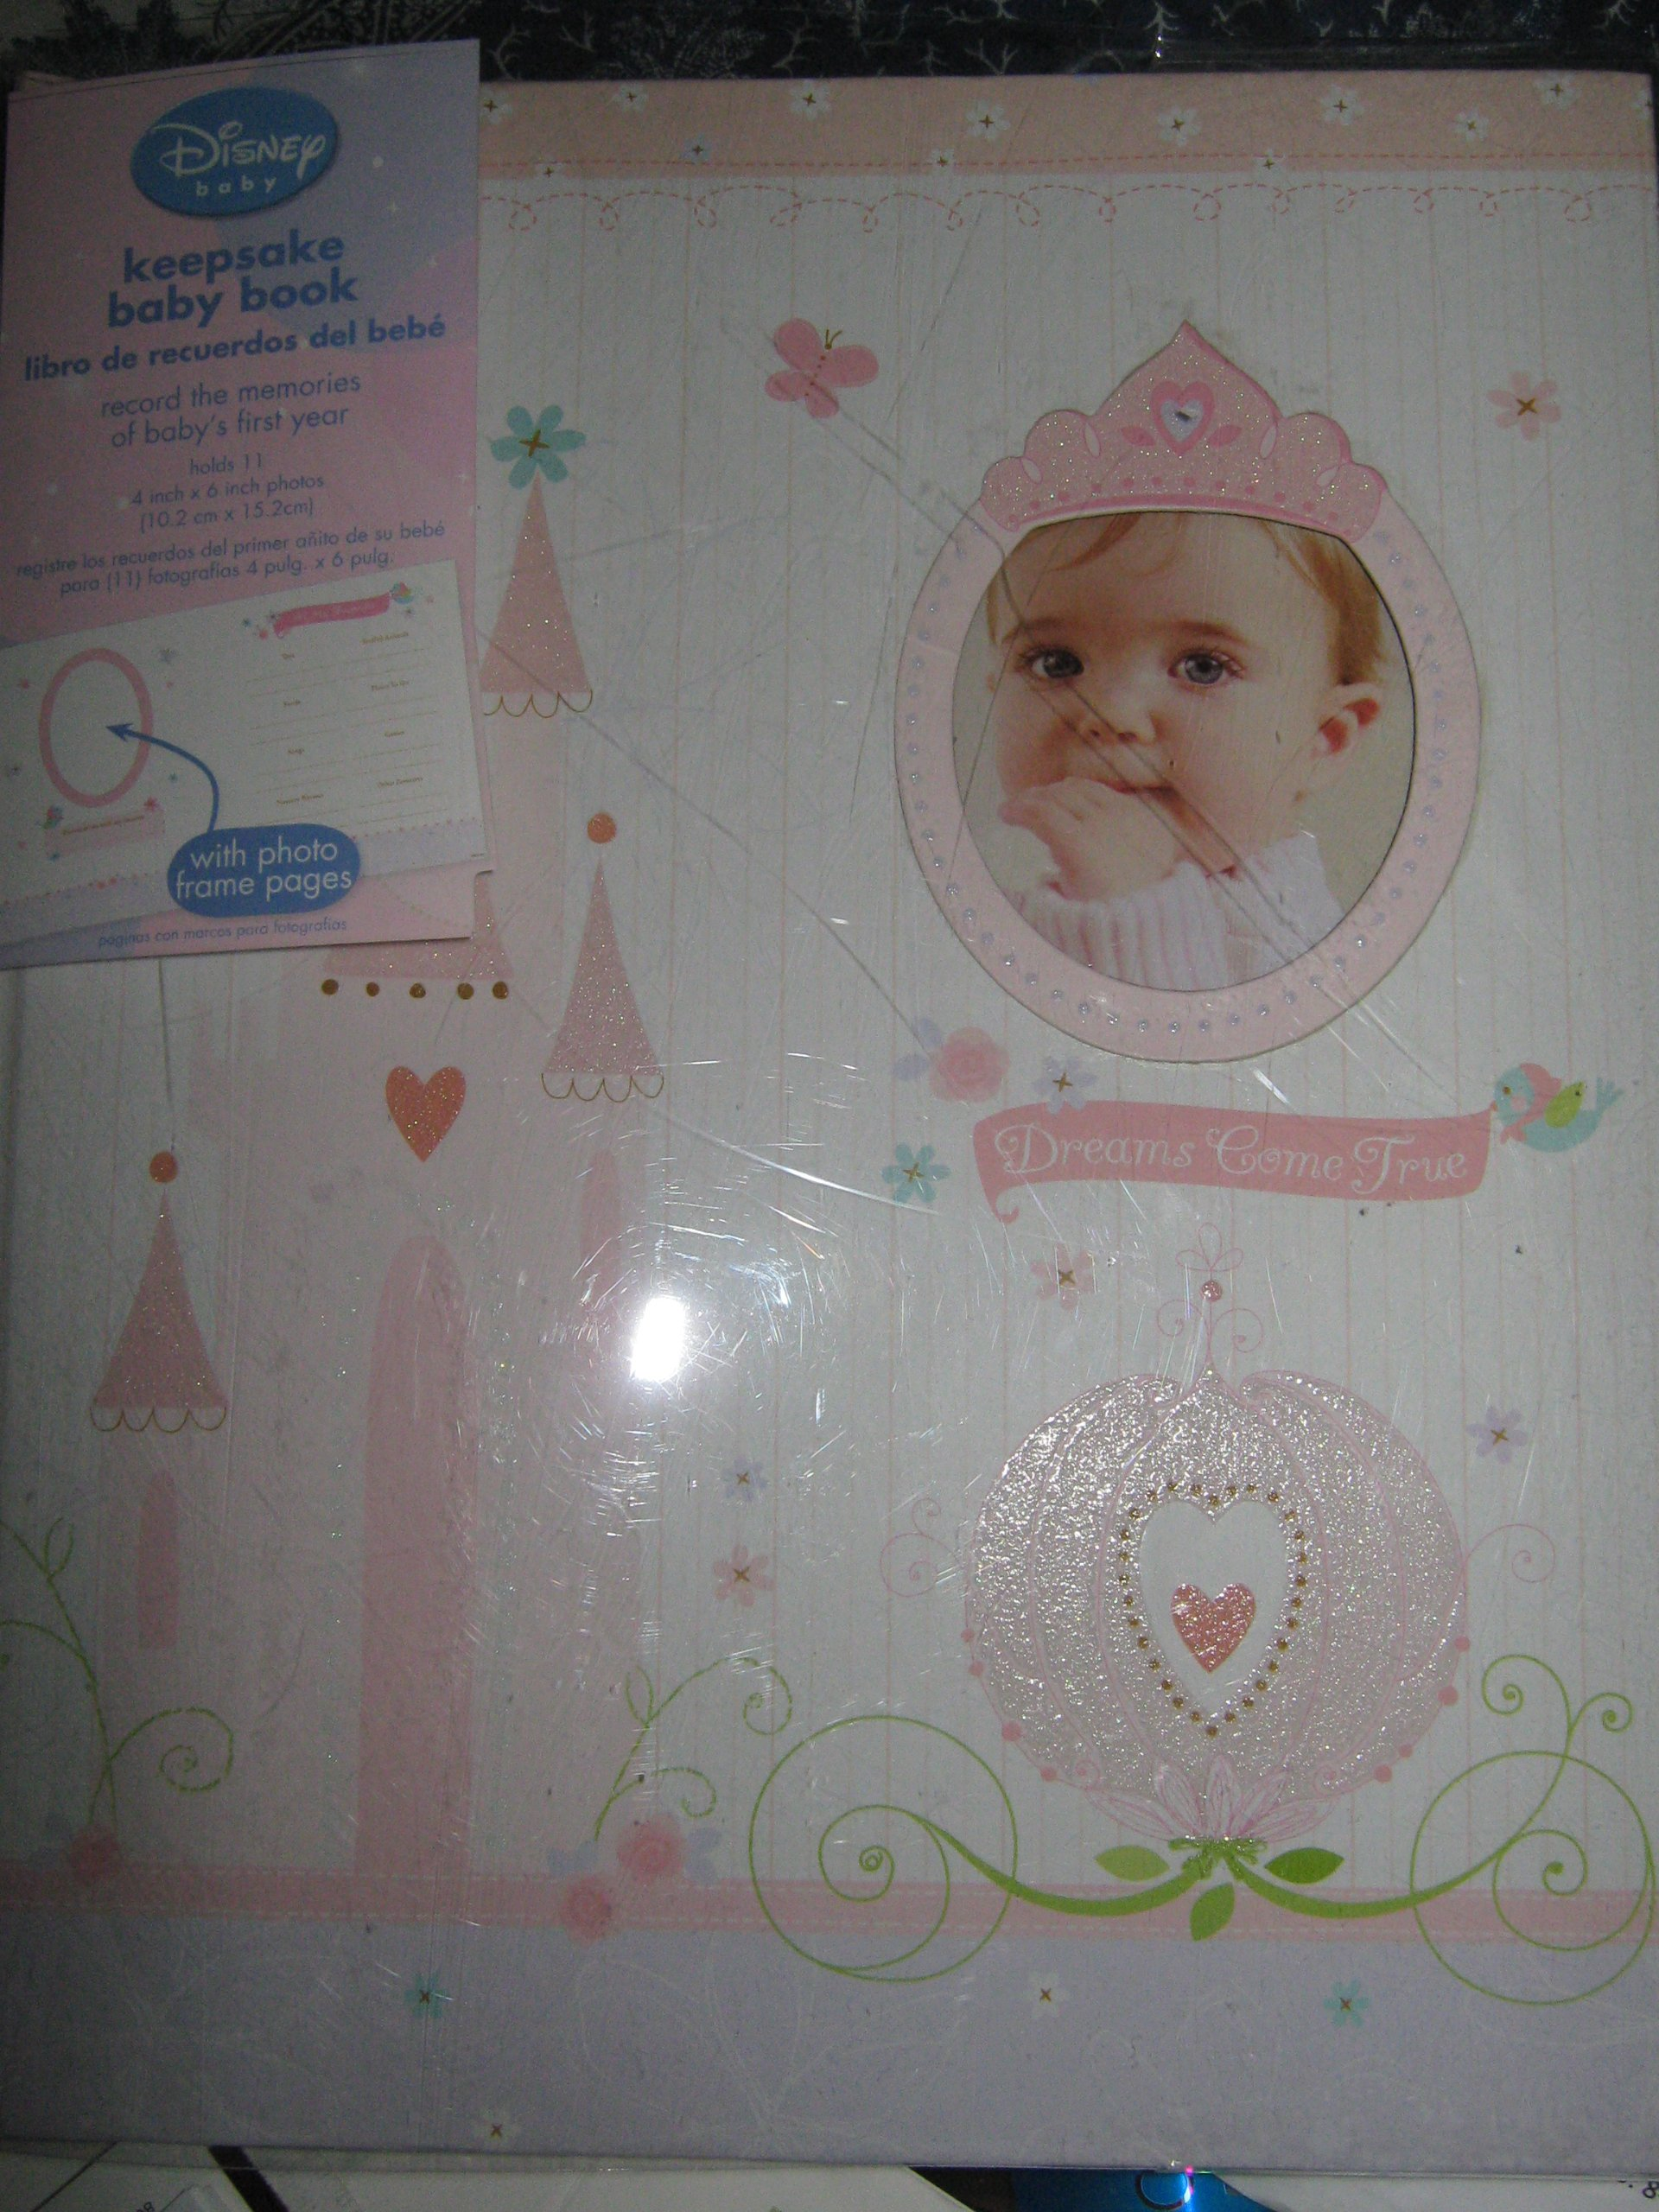 Disney Princess Keepsake Baby's First Year Memory Book for Baby Girl ''Dreams Come True'' by Disney (Image #1)